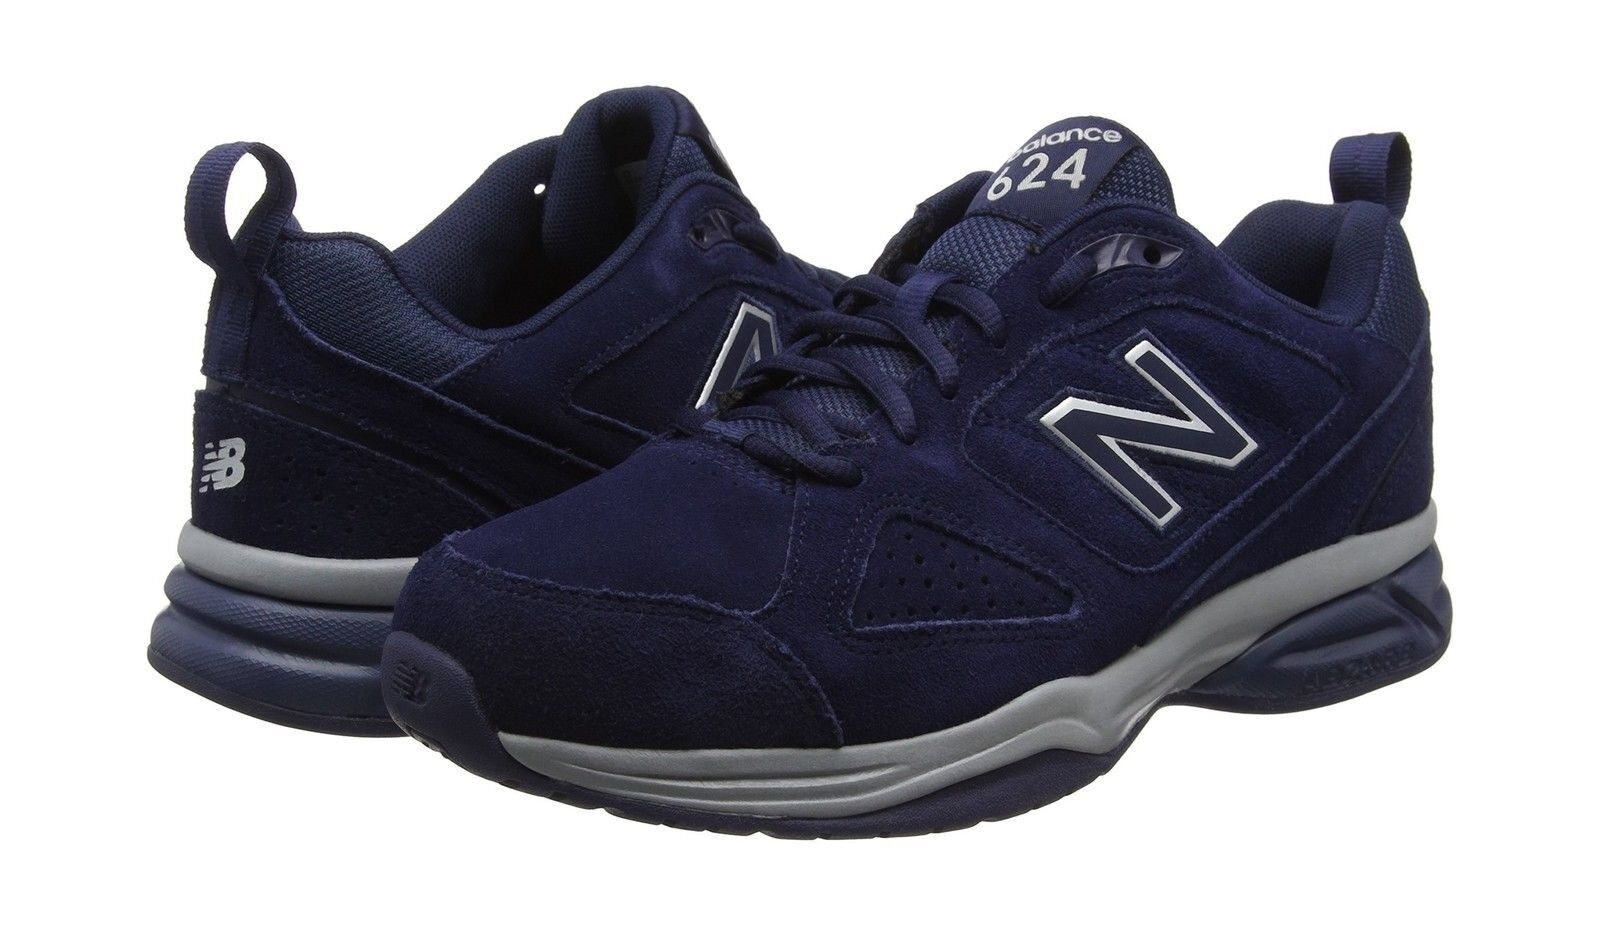 New Balance Hombre's MX624NV4 Navy Suede Suede Suede 4E Wide Trainers 9ad81c